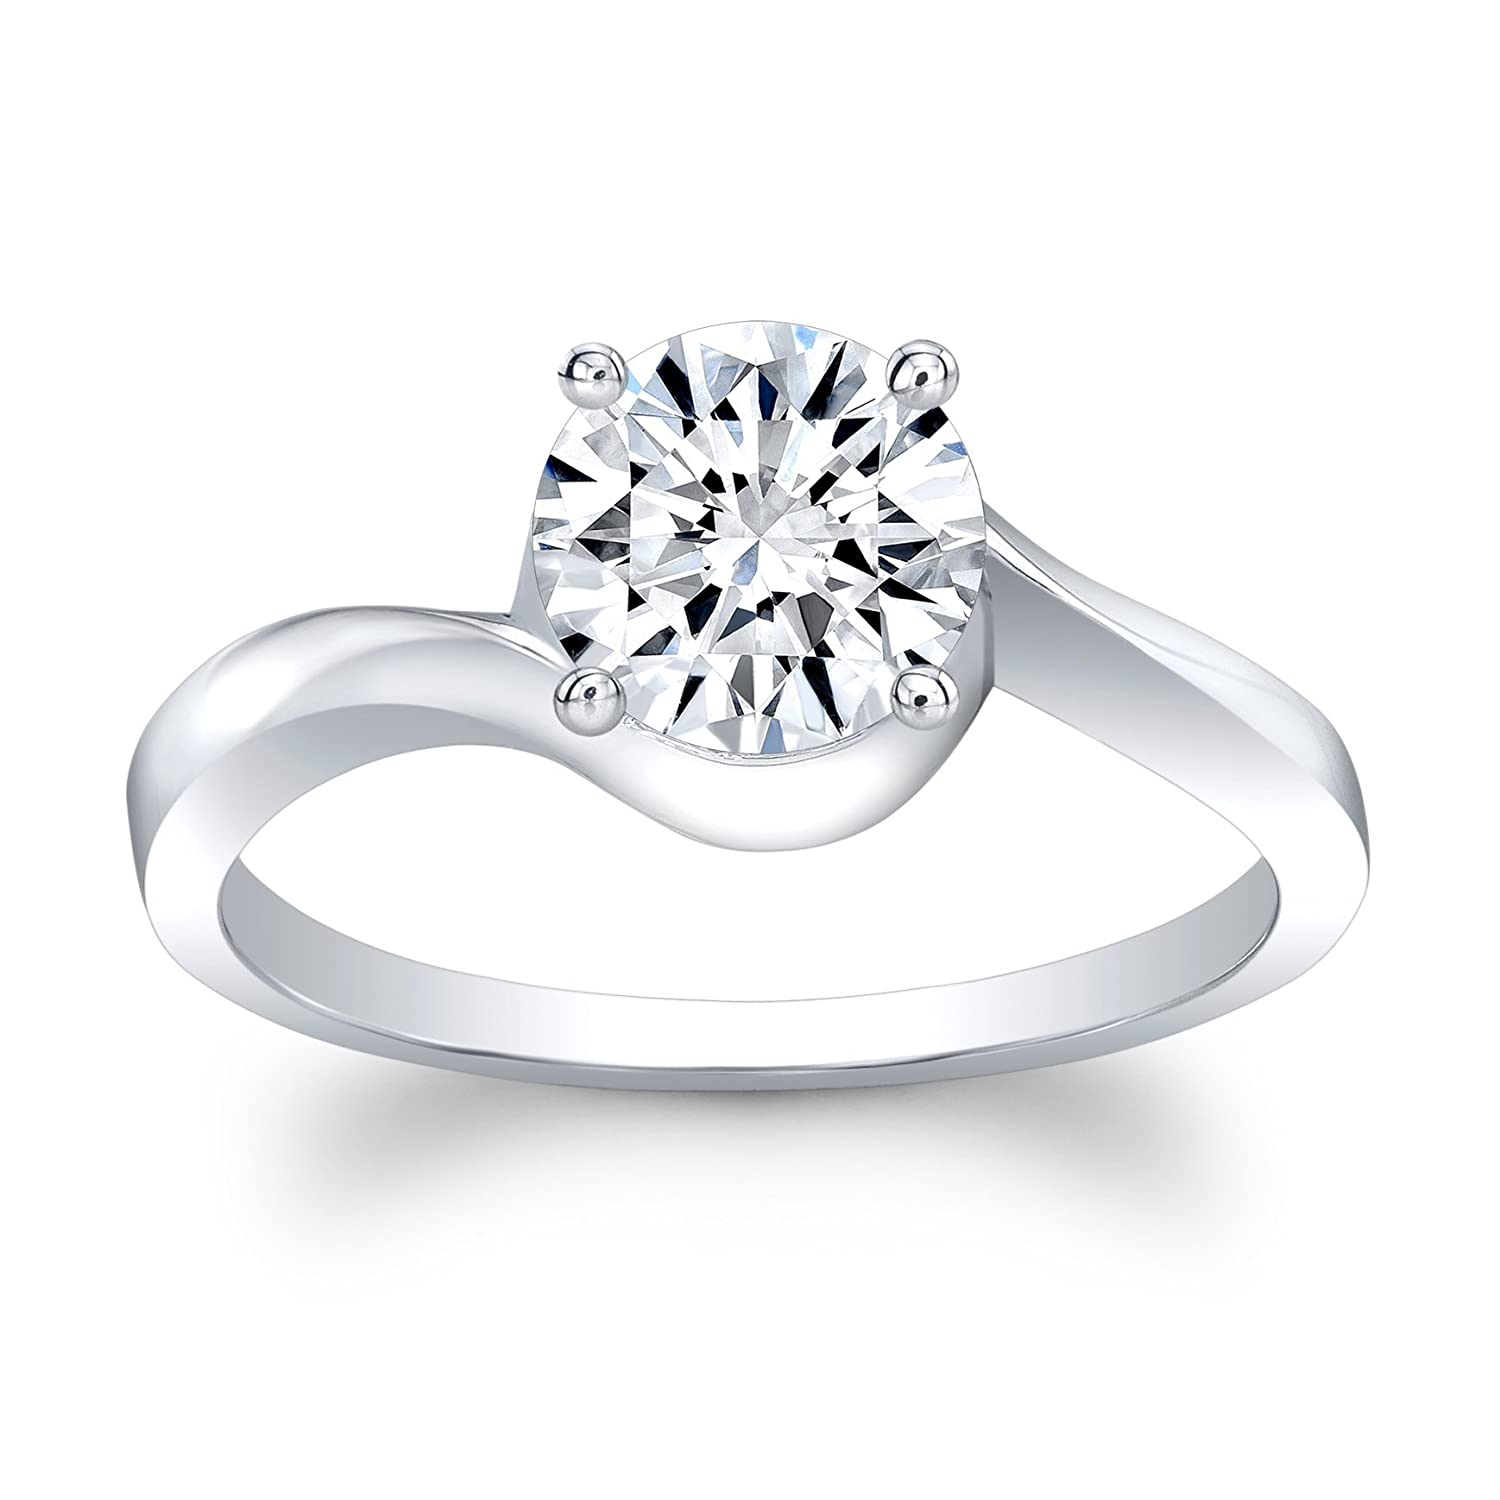 Moissanite 5 carat engagement ring 18 karat white gold Round Brilliant solitaire in 4-prong setting